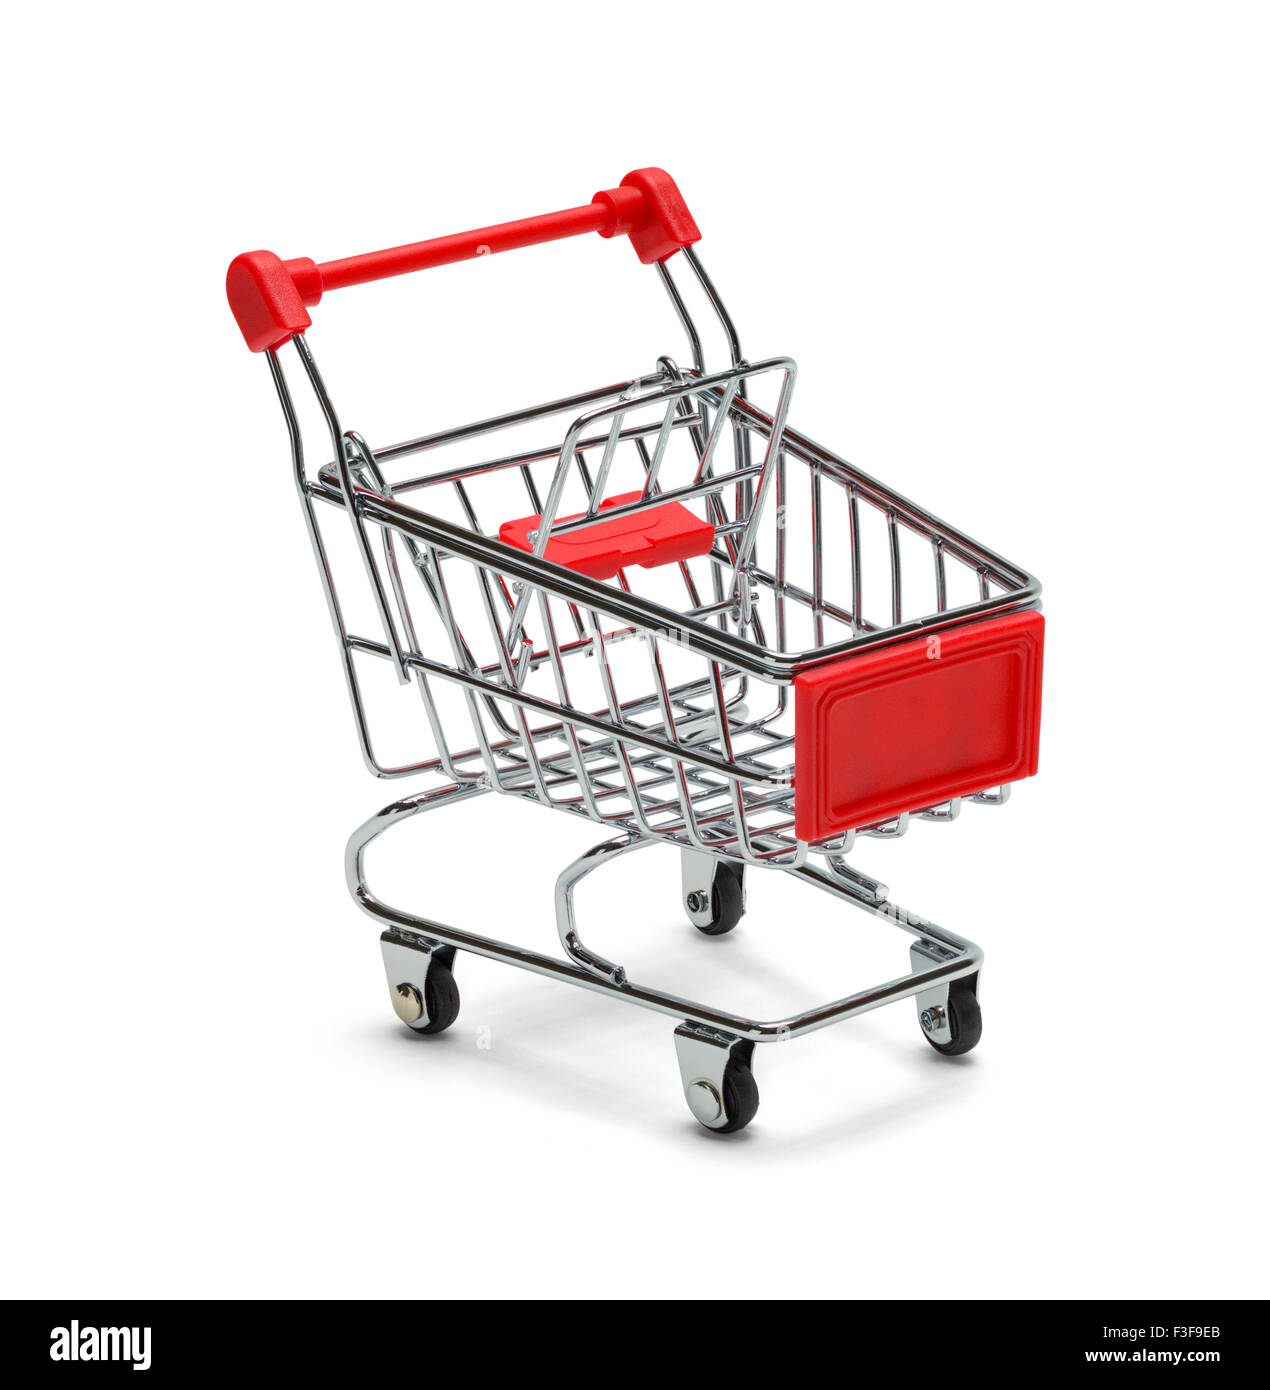 Red and Silver Shopping Cart Isolated on White Background. - Stock Image